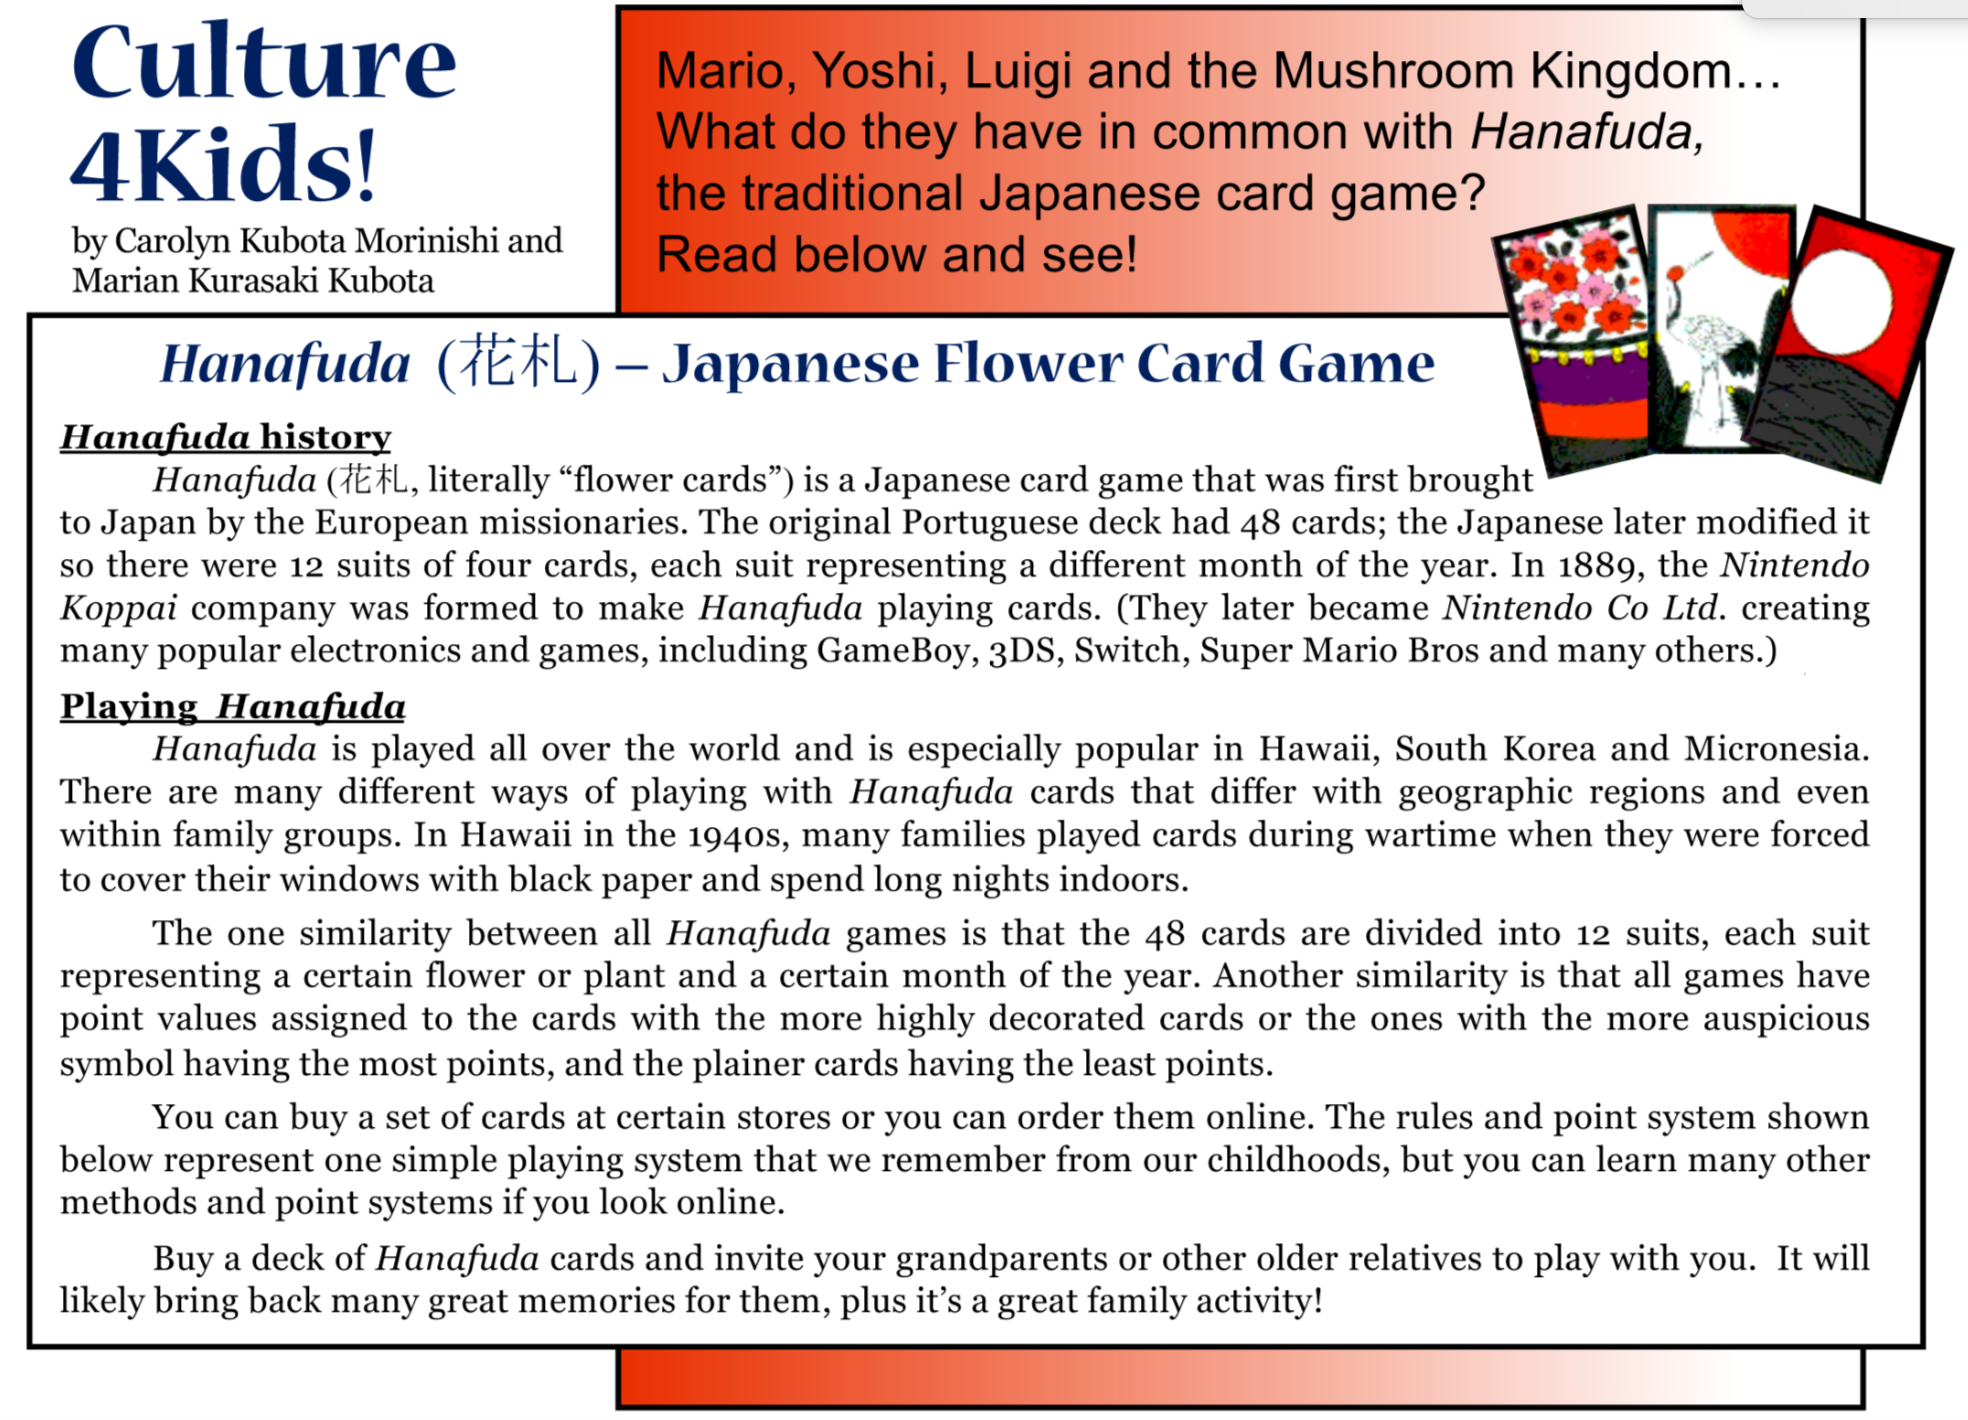 Culture4Kids! 'Hanafuda - Japanese Flower Card Game'